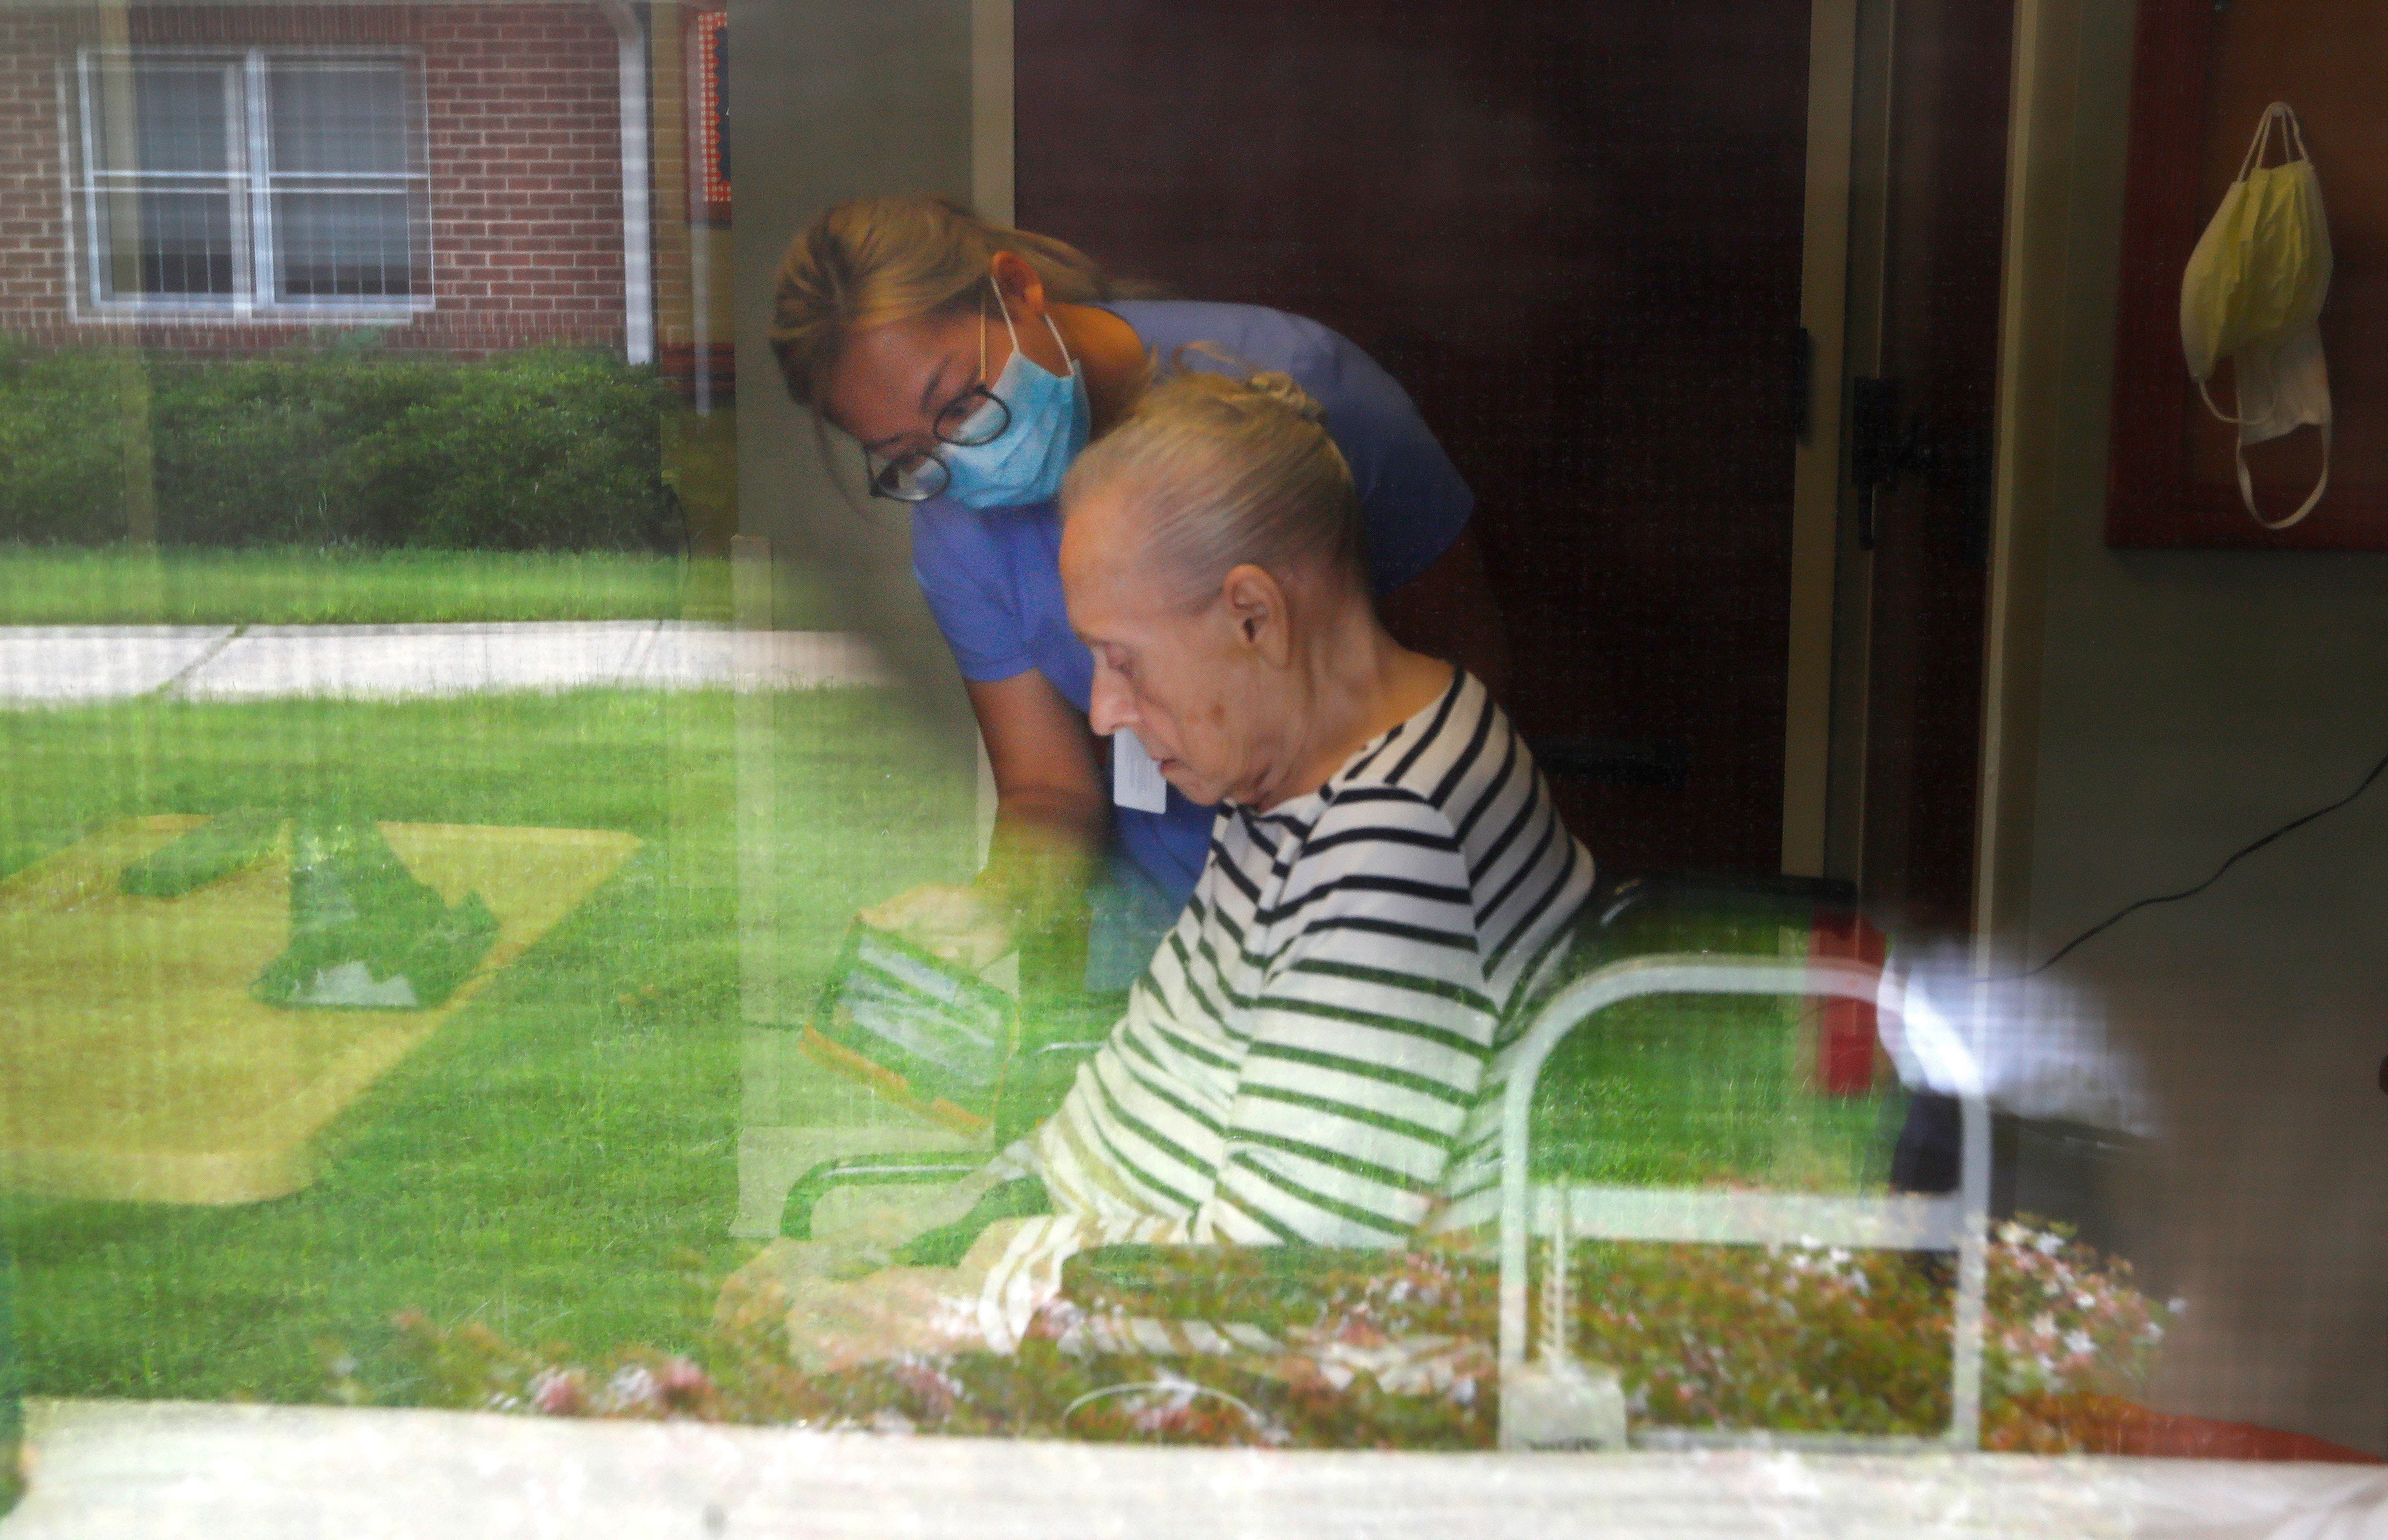 """Wei Zeng tries to alert Maureen Buchman, 89, to her daughter Maureen Perkins' calls through the window of her senior living facility just after 10am on Sept. 1, 2020. Buchman, who has dementia, doesn't respond to her daughter on this day. """"This is the first time she has been glazed, says Perkins. """"It's going to be a hard one to put behind me today."""""""